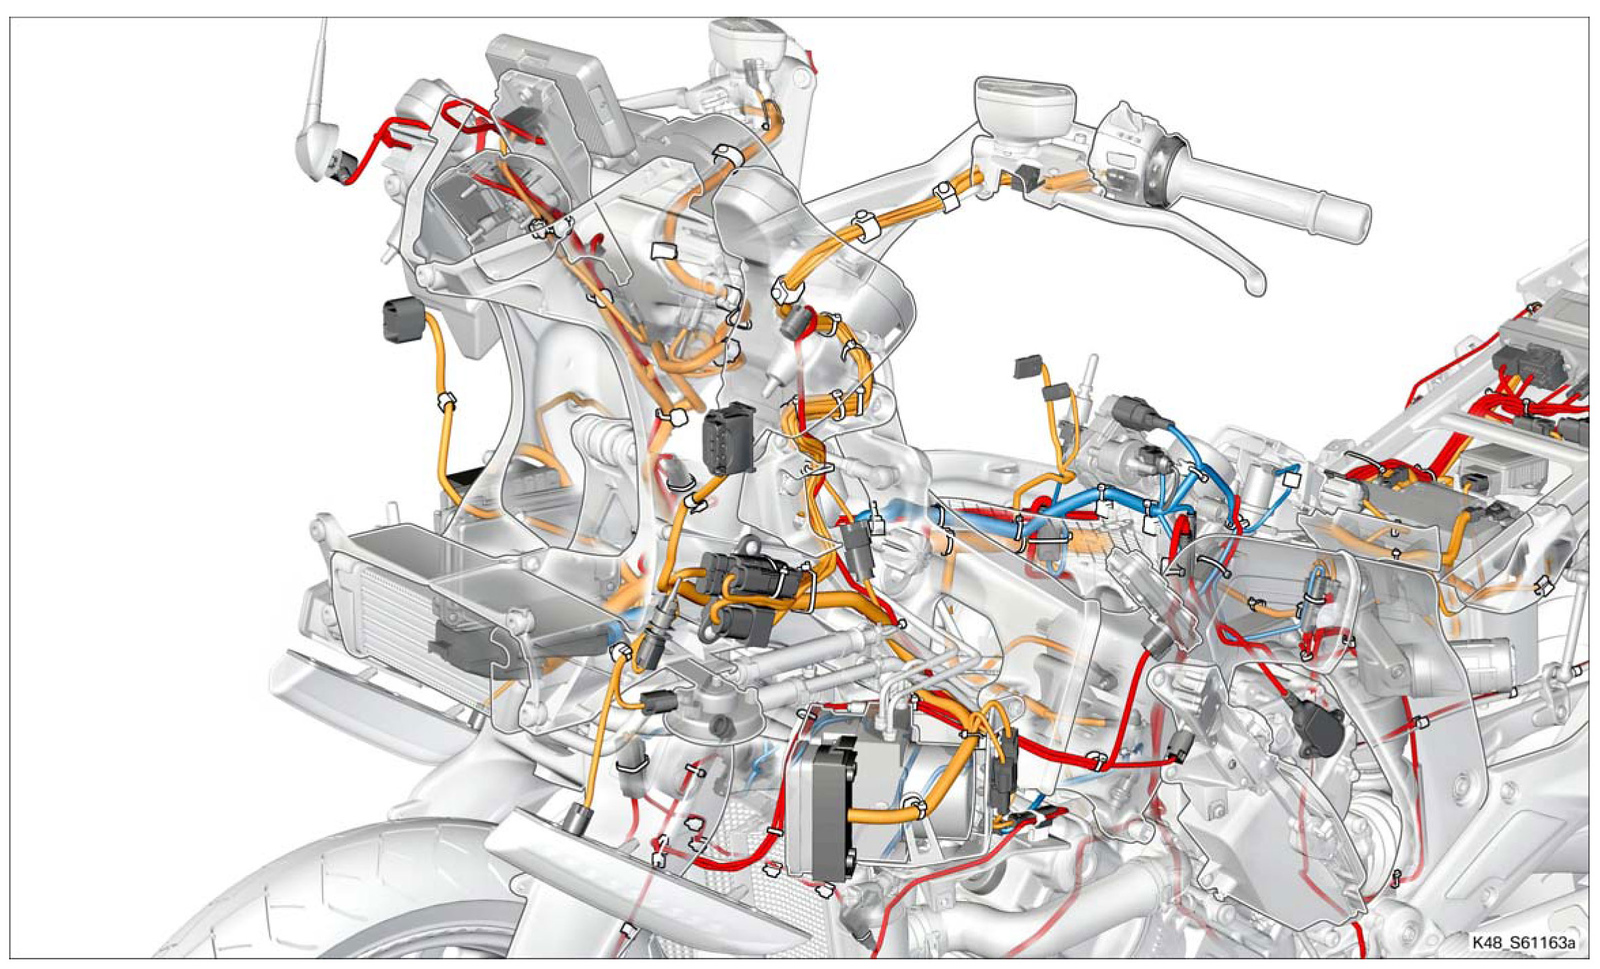 hight resolution of wiring diagrams how the k1600 is wired bmw k1600 forum bmw k1600gtl wiring diagram bmw k1600gtl wiring diagram